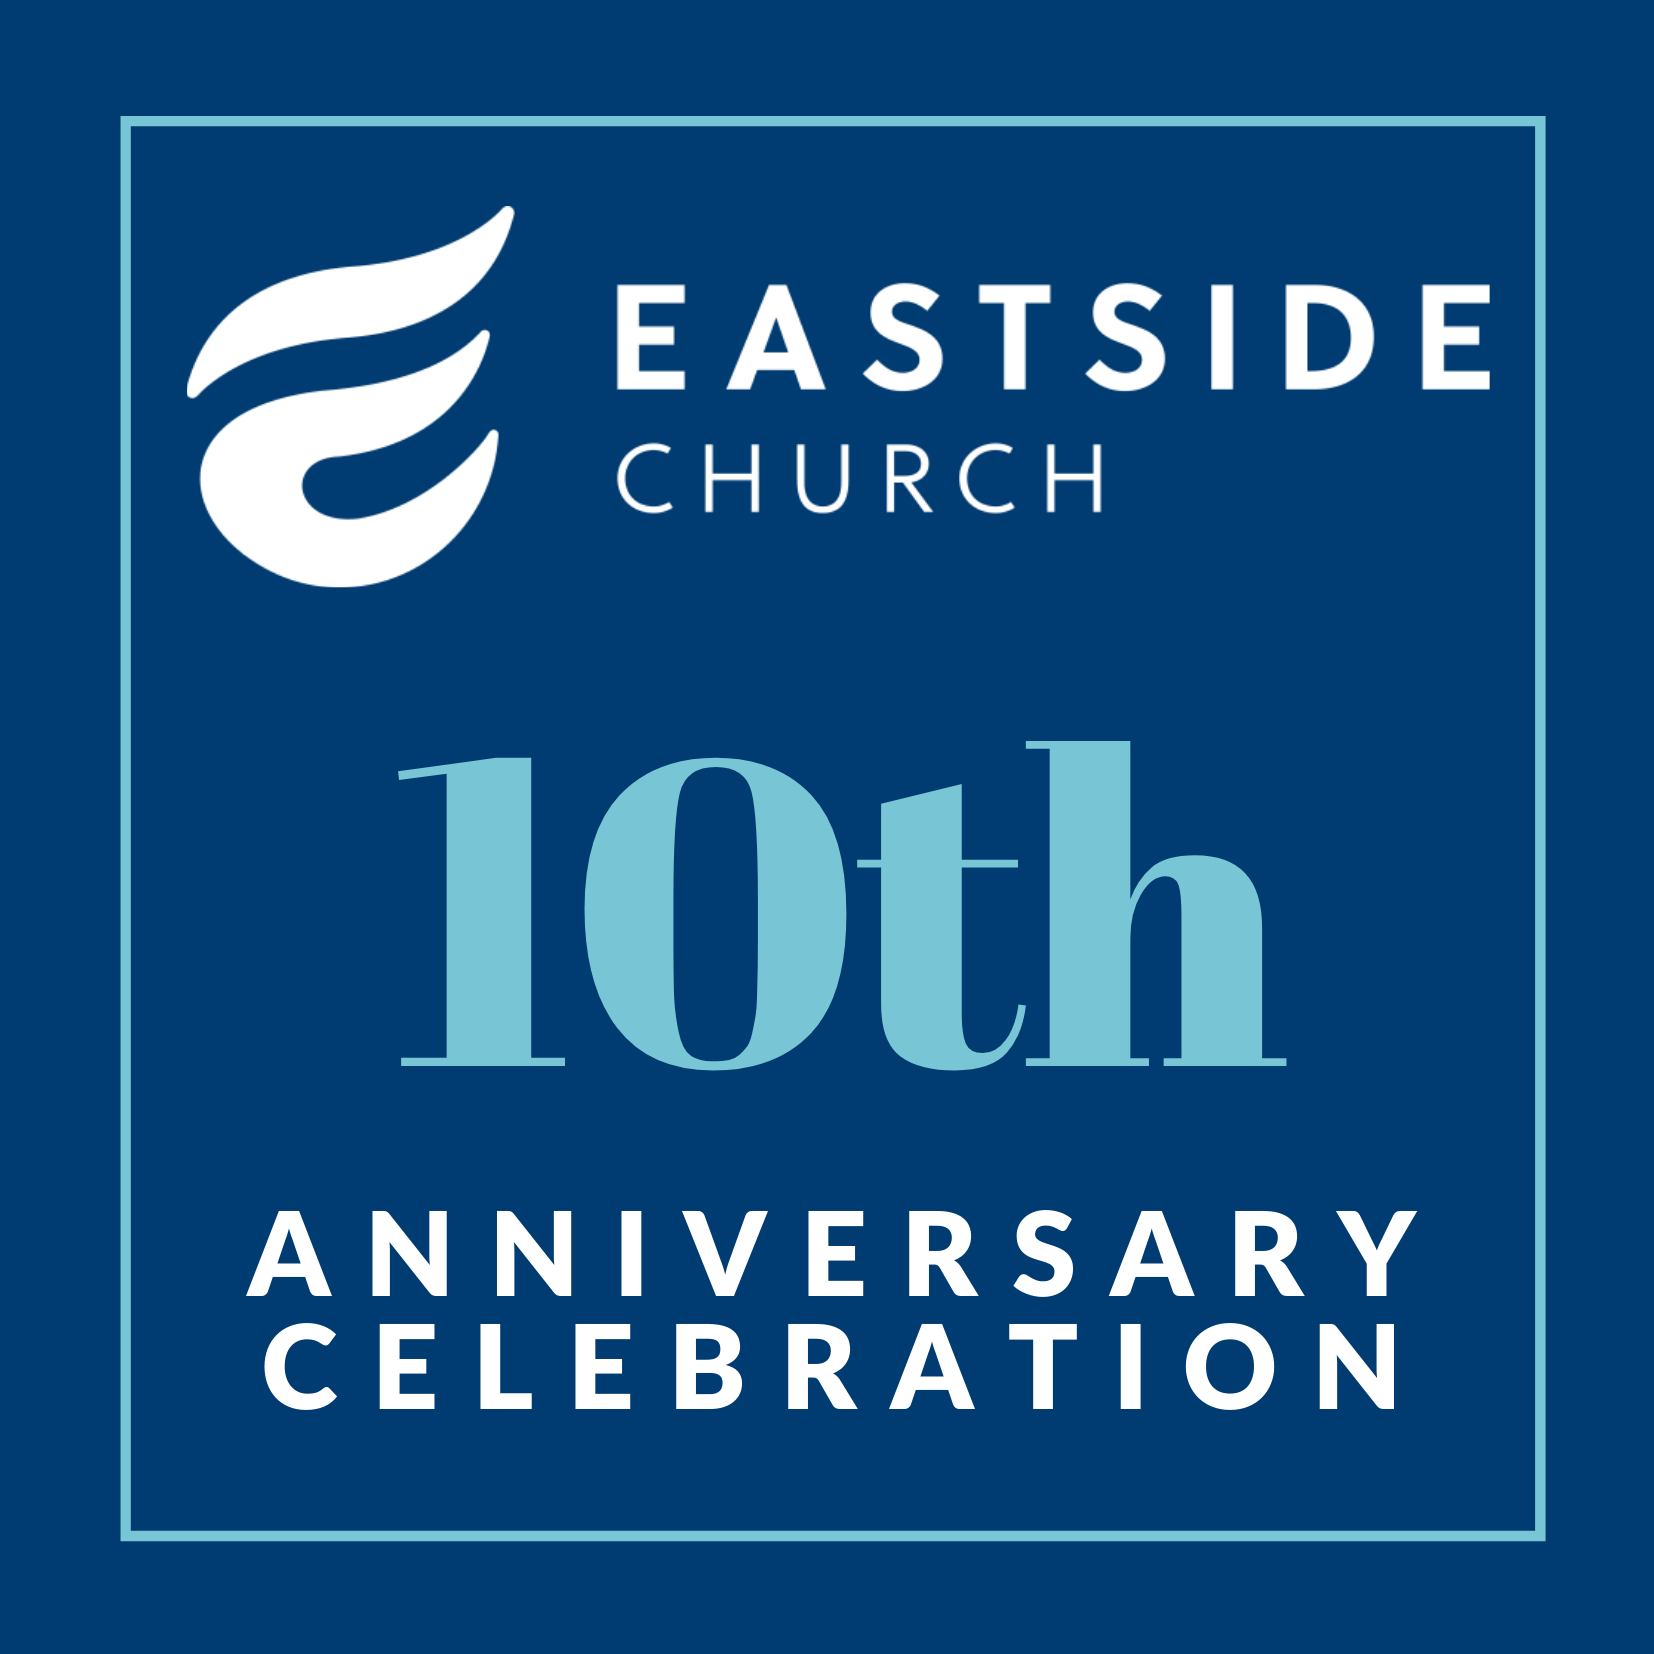 Eastside Church 10th Anniversary Celebration logo